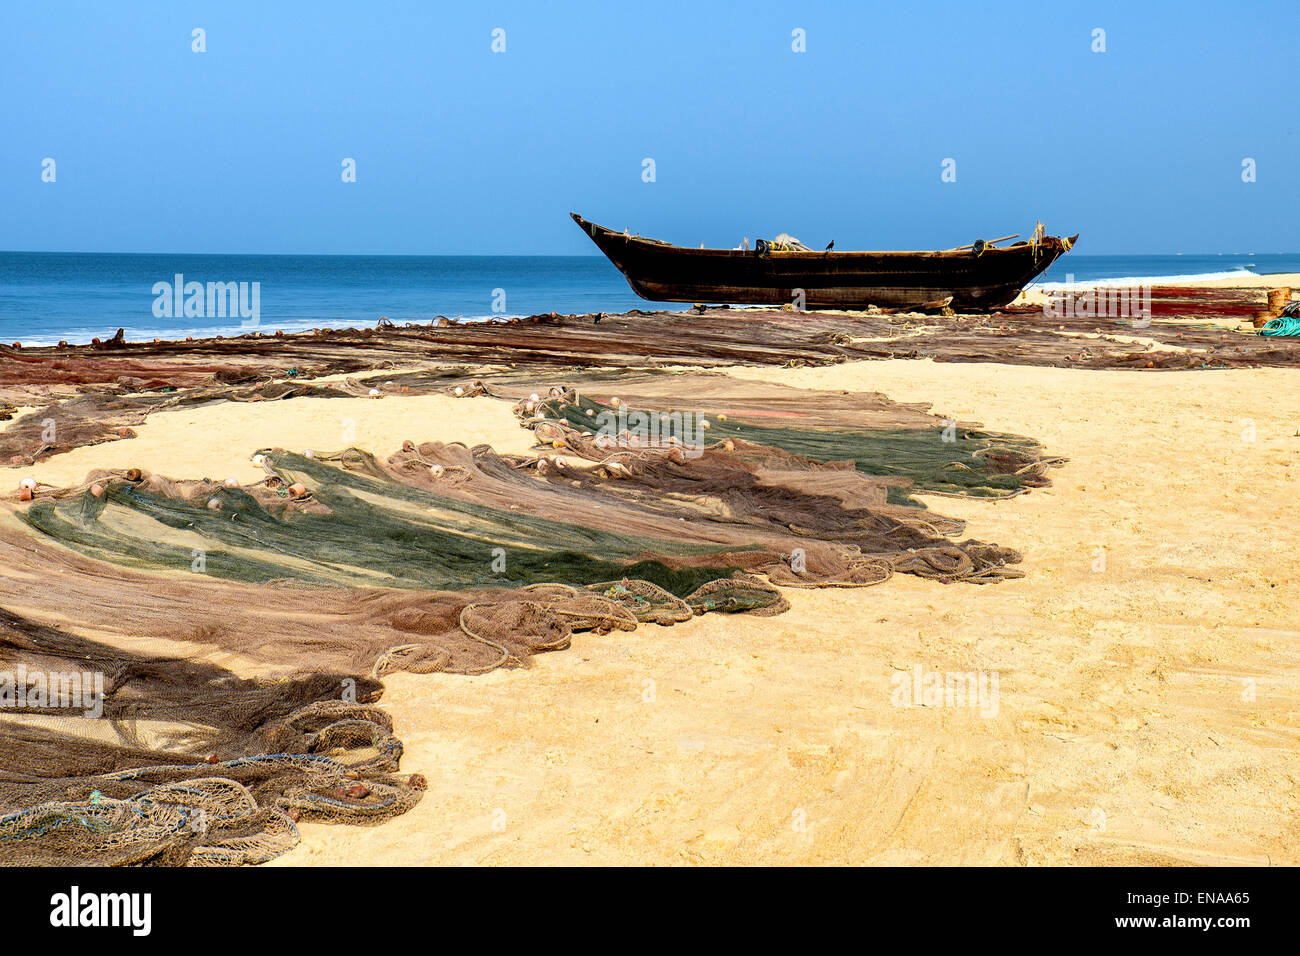 Goan Fishing boat with fishing nets in the foreground on Cavelossim, Salcette Goa - Stock Image